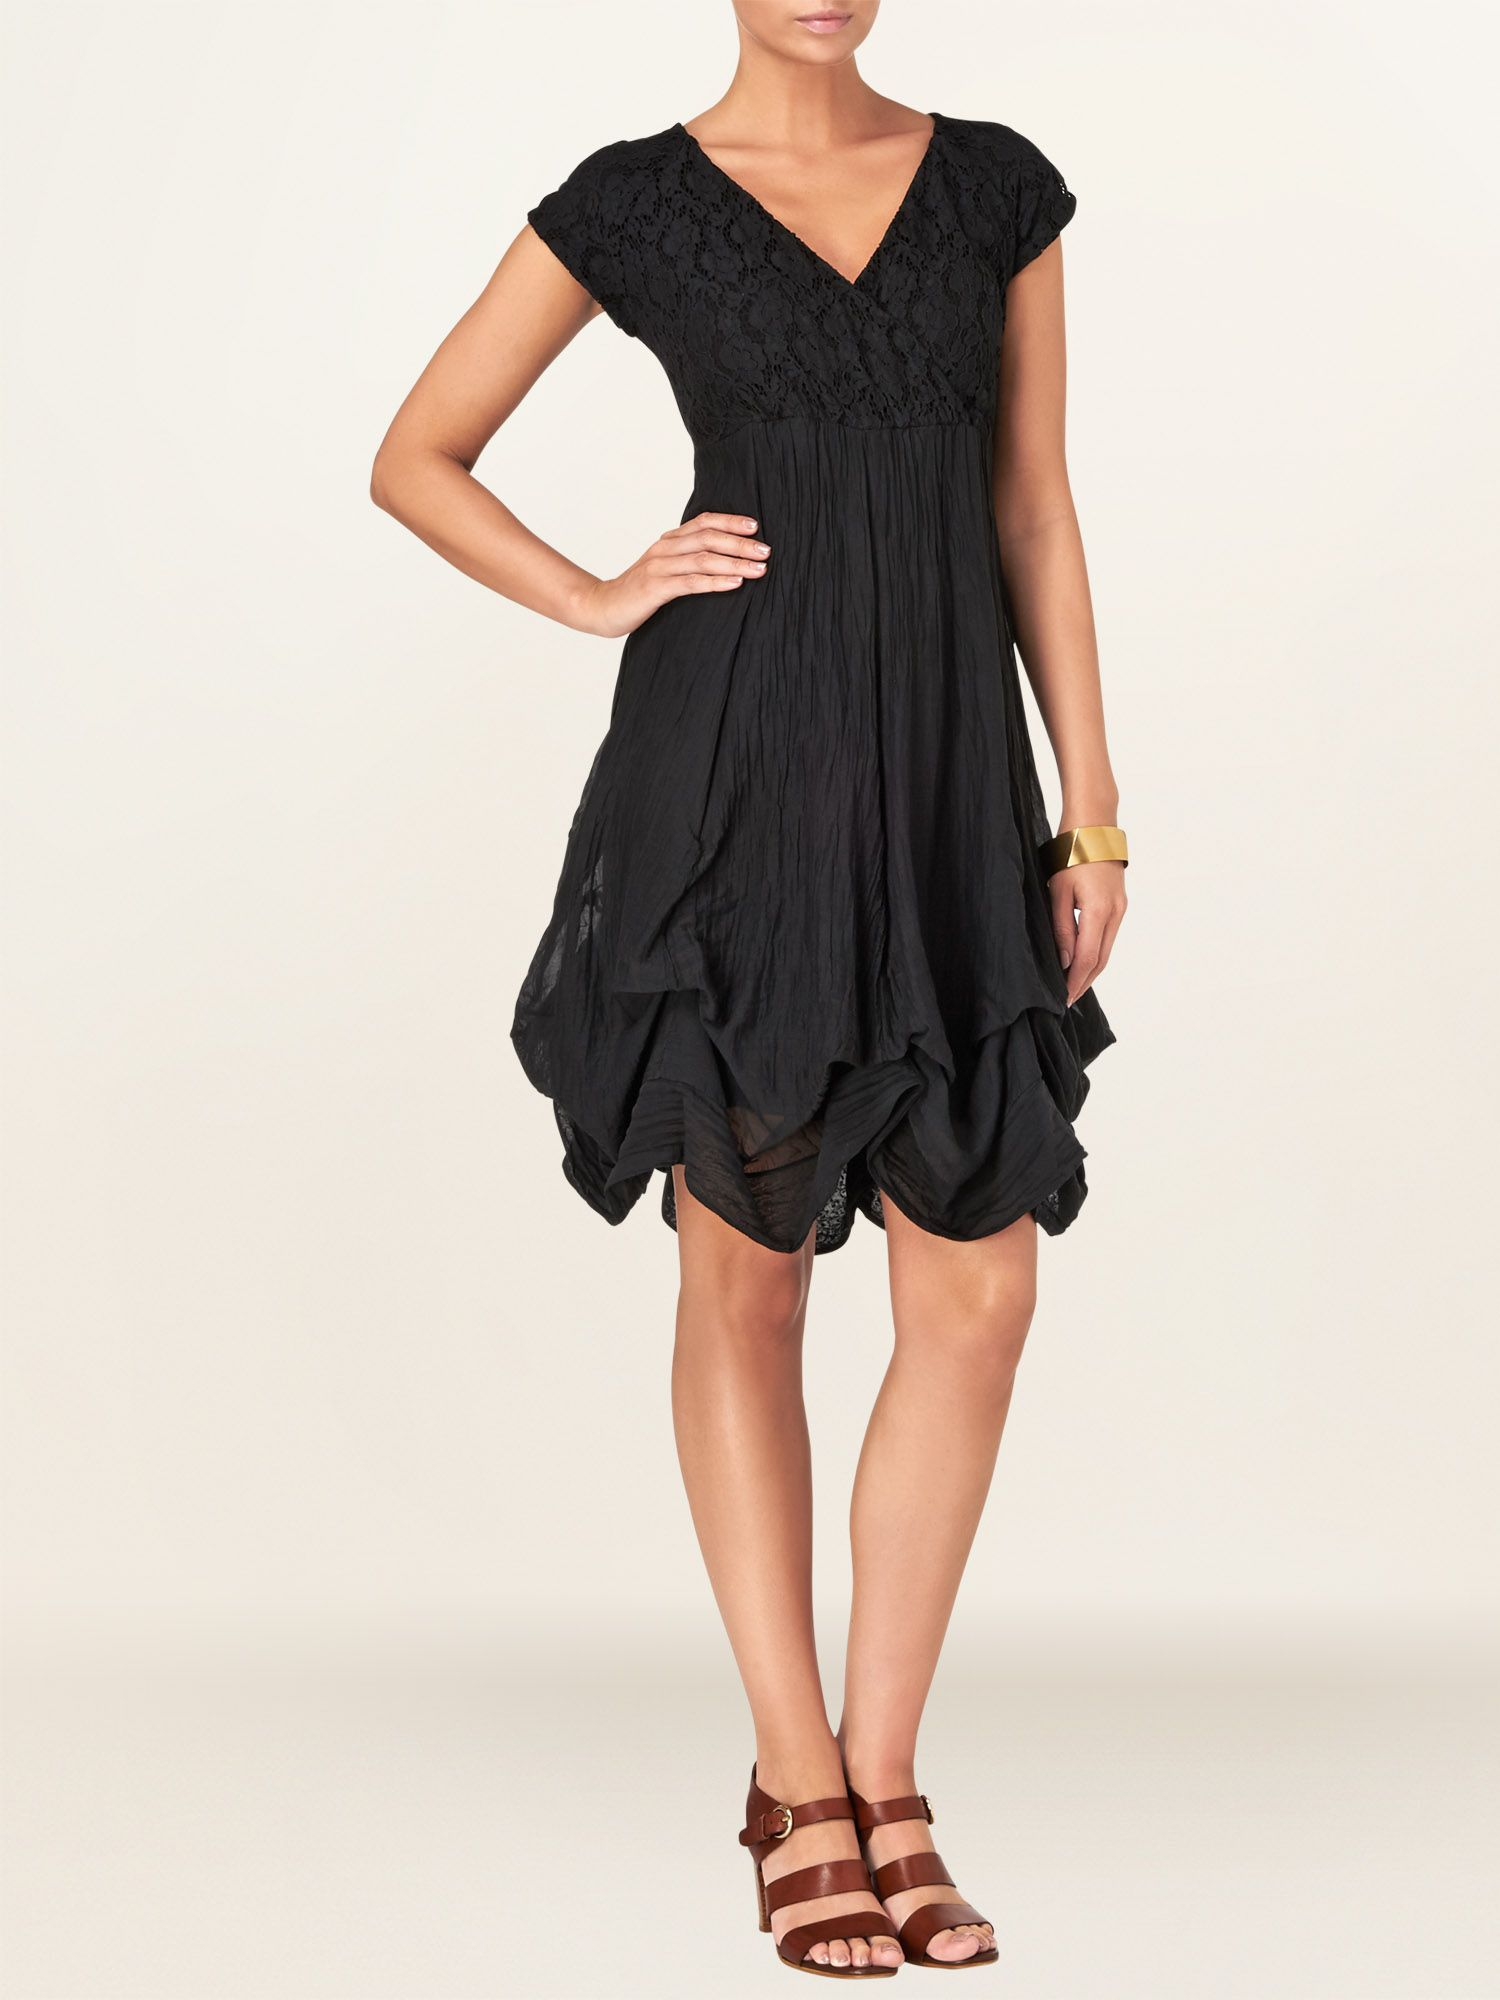 Yvette lace hook up dress